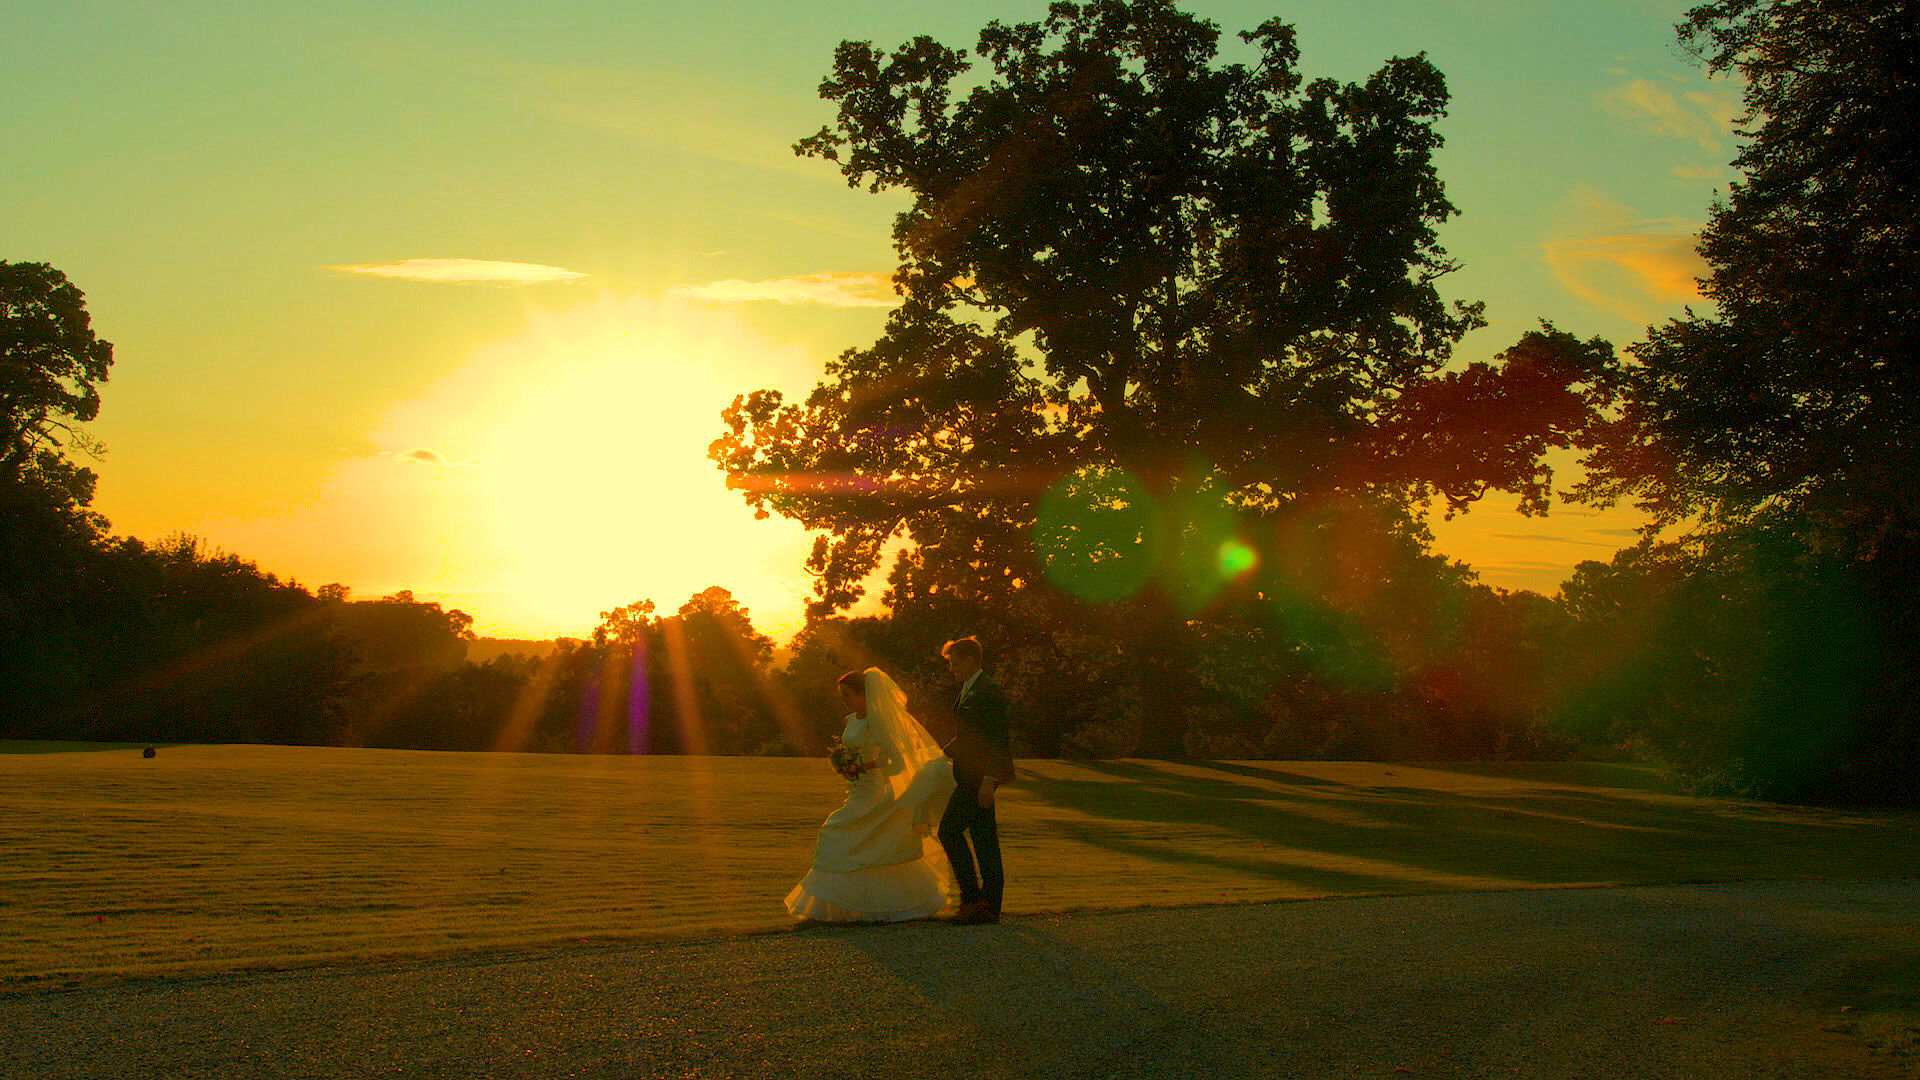 Sunset Films - Cinematic Wedding Videography